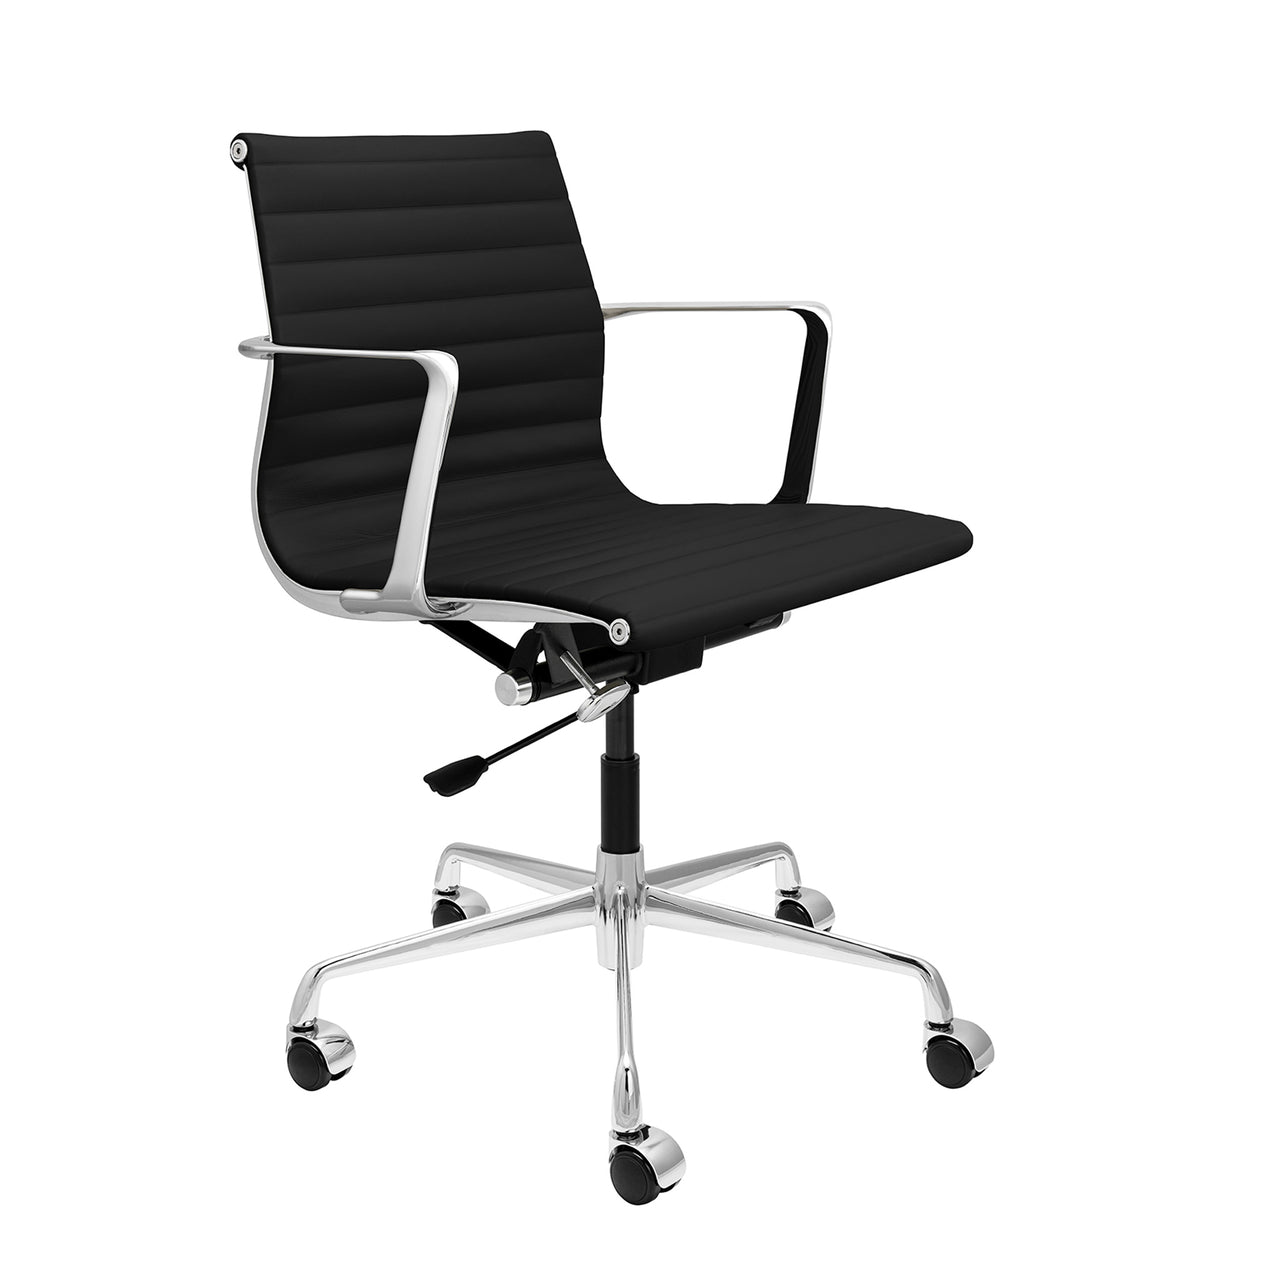 SOHO Pro Ribbed Management Chair (Black Italian Leather)